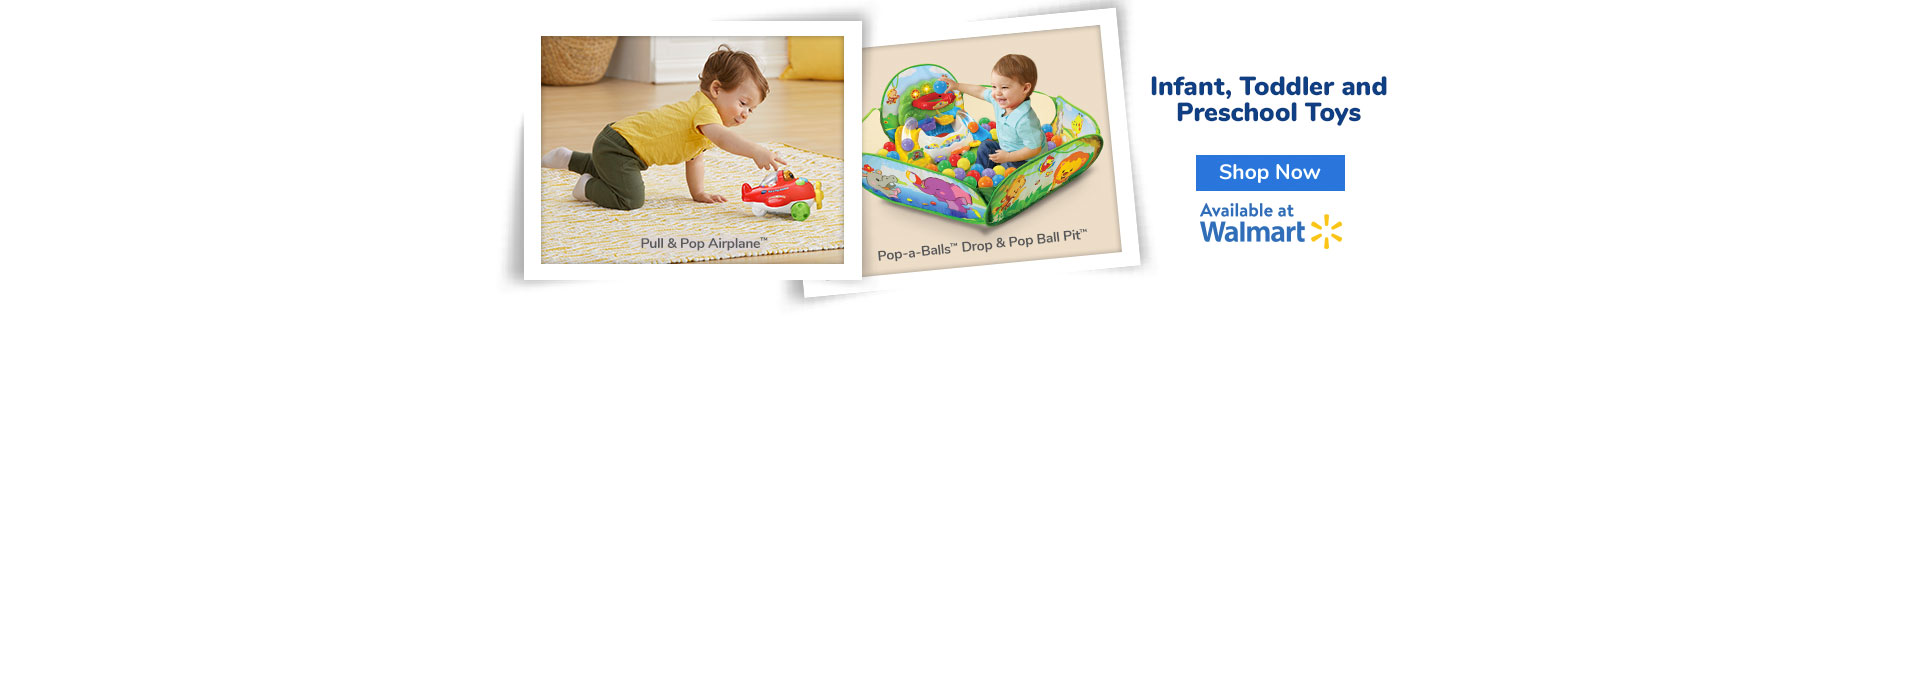 Infant, Toddler and Preschool Toys - Buy Now at Walmart